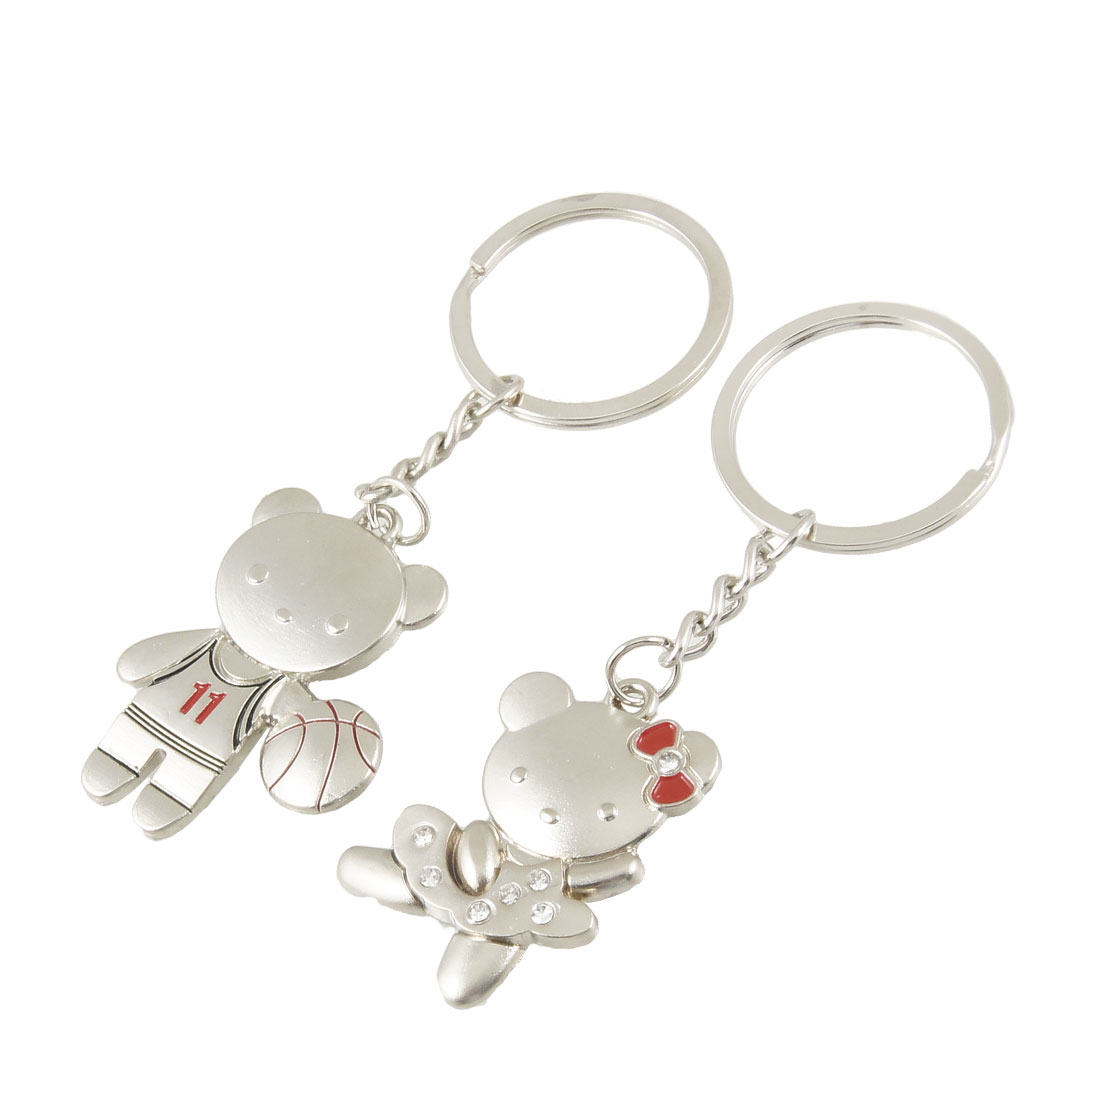 Lovers 2 Pcs Bear Shaped Pendant Silver Tone Metal Keychains